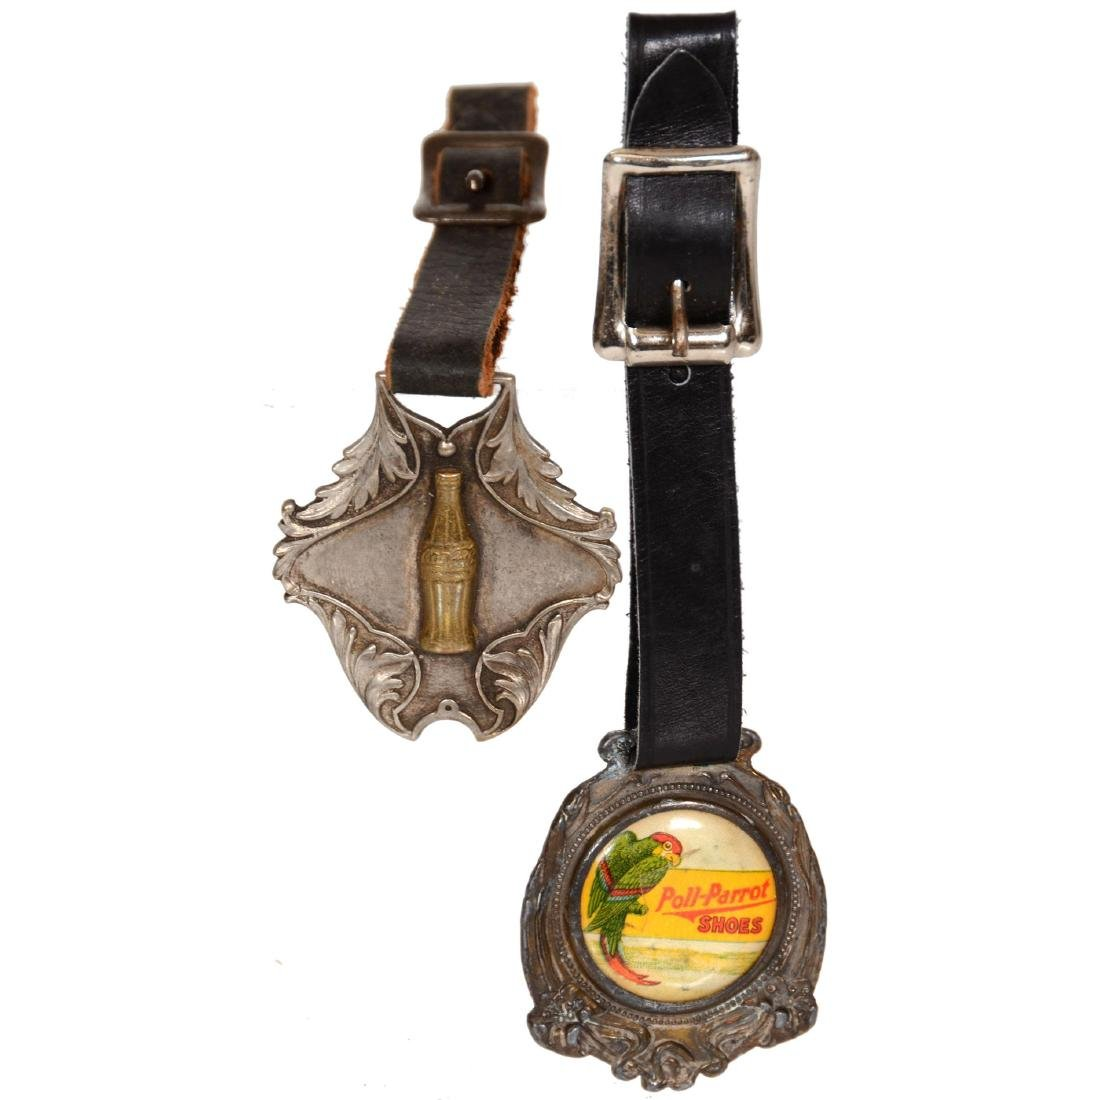 (2) Advertising Watch Fobs with Leather Straps